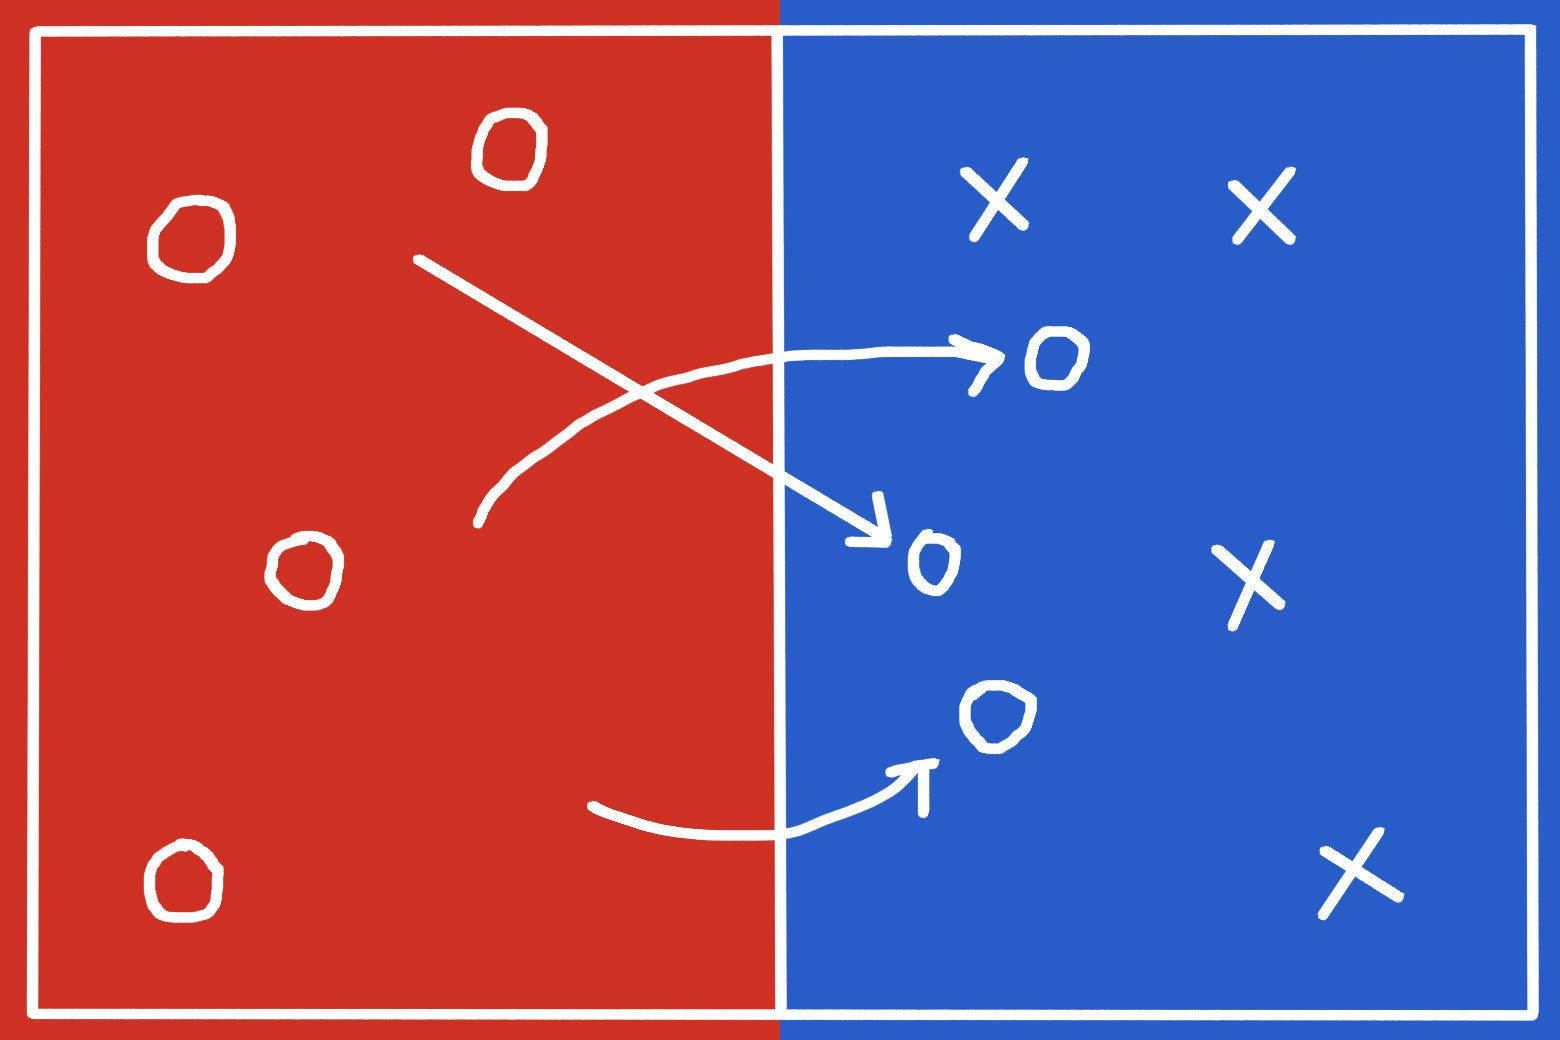 Circles in a red area going over to join X's in a blue area.